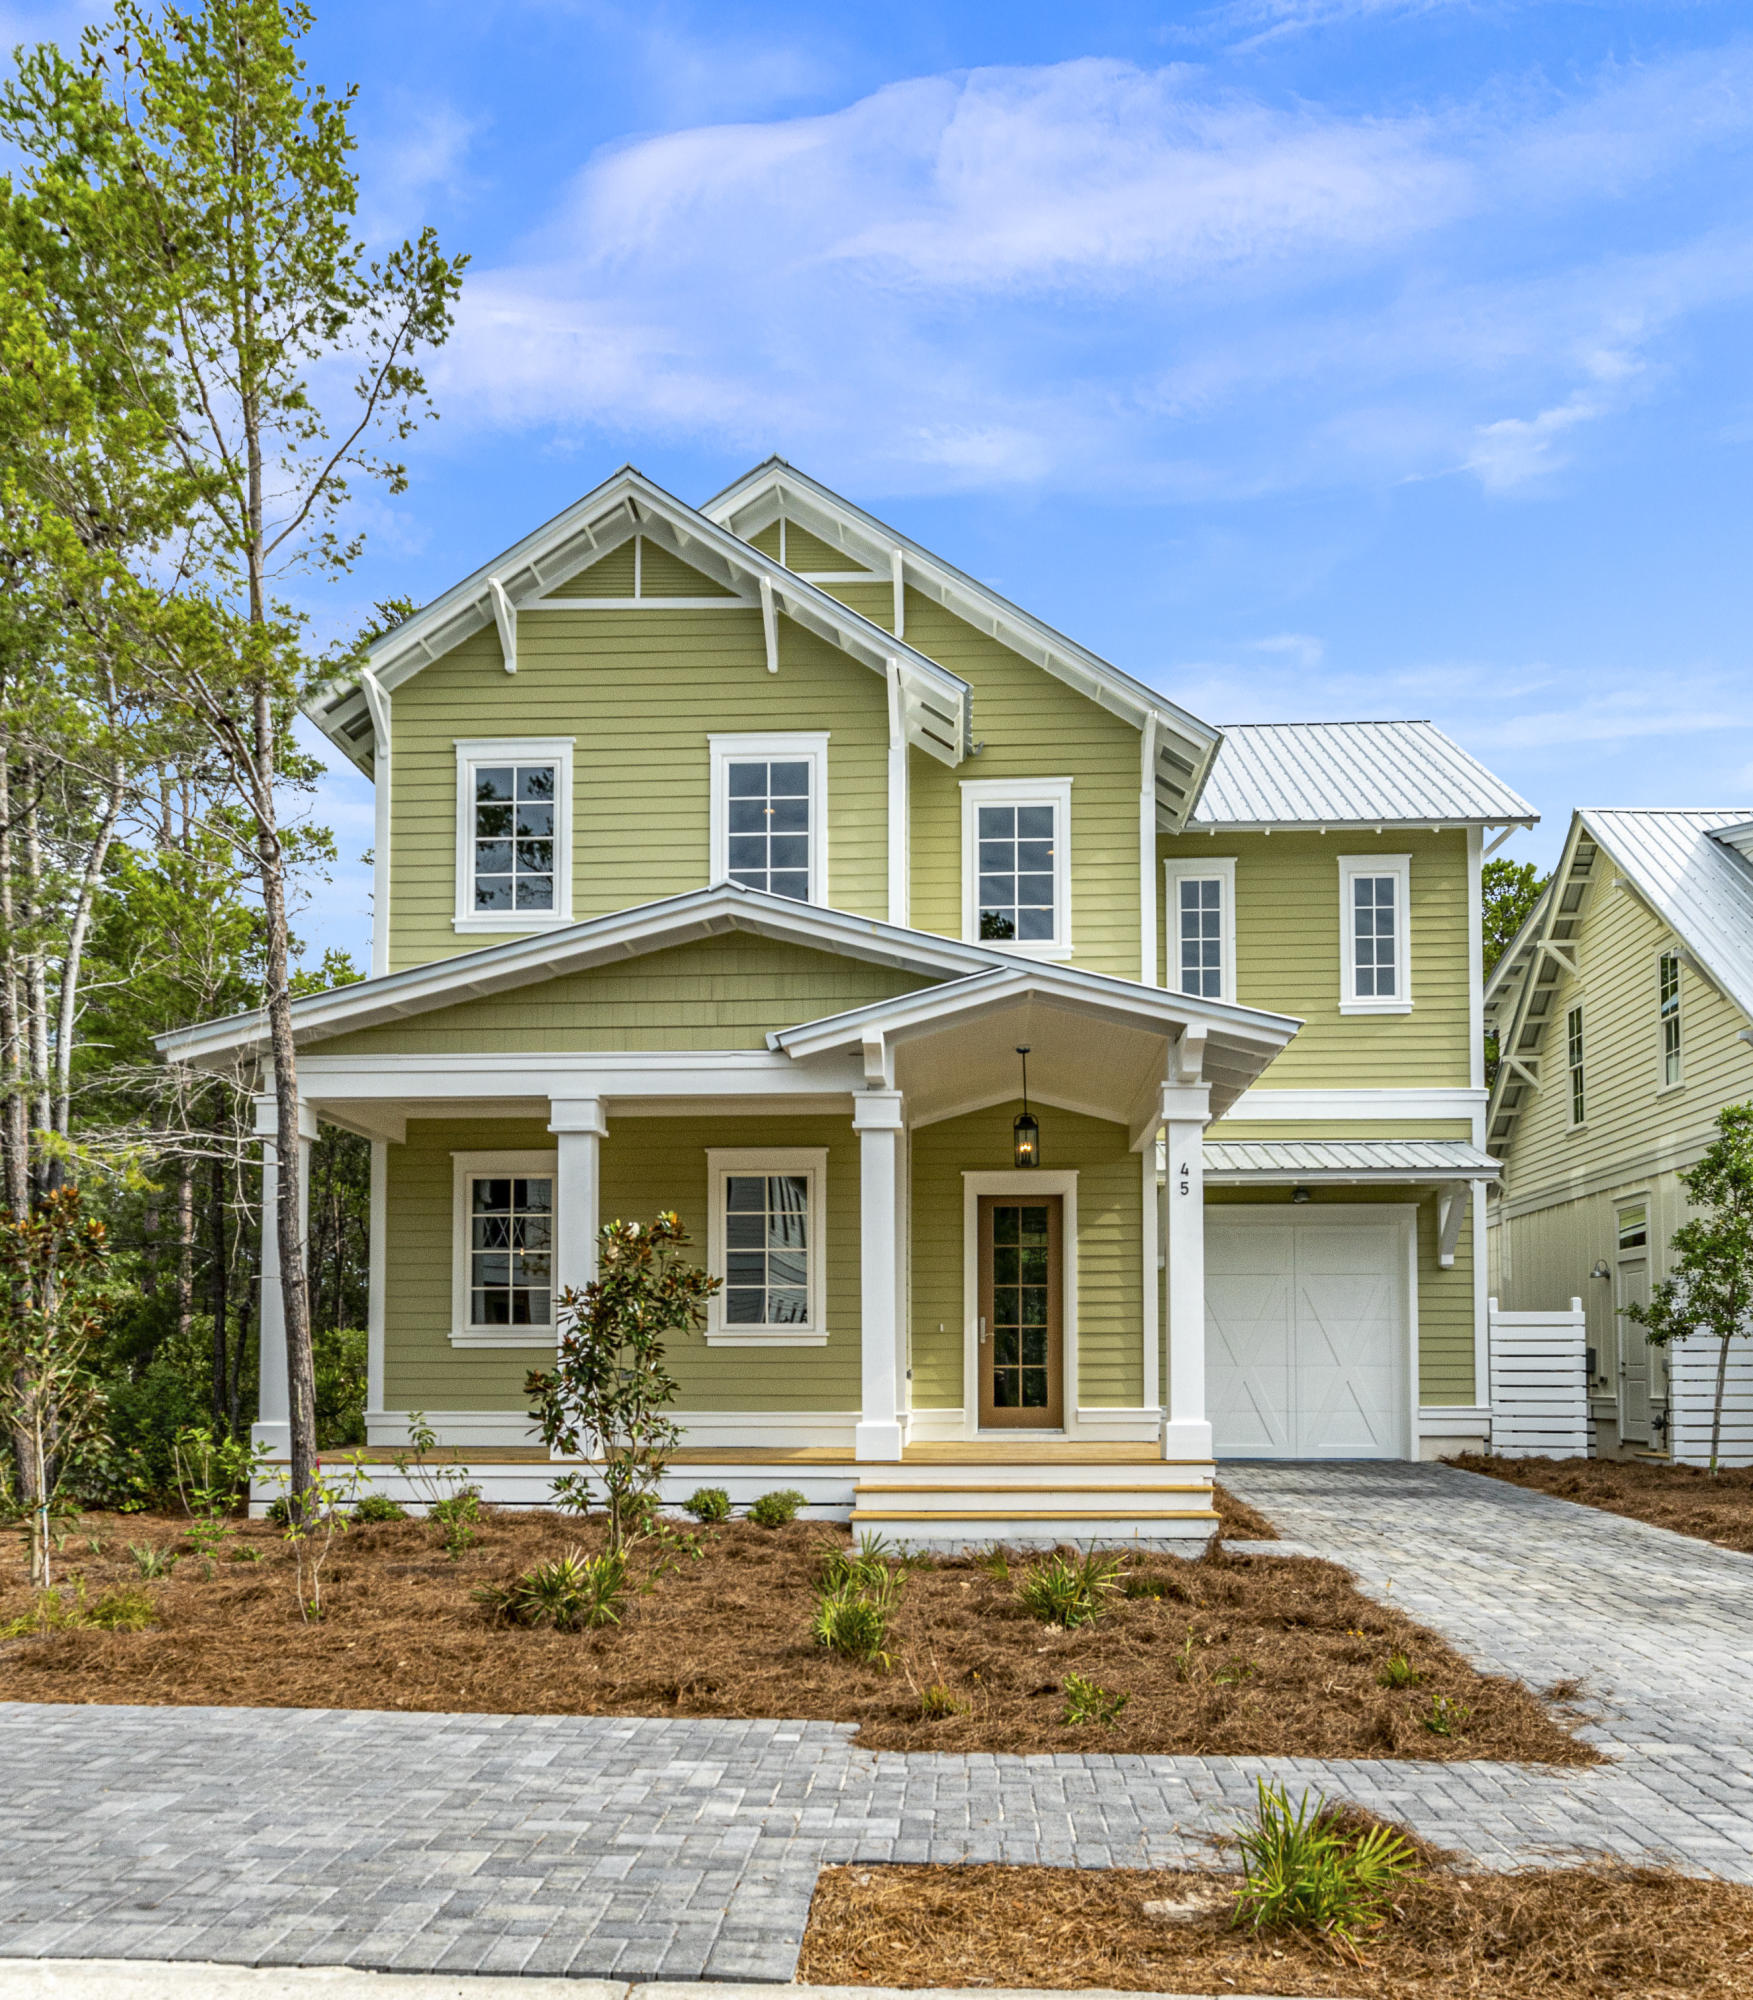 A 4 Bedroom 3 Bedroom Lakeside At Blue Mountain Beach Home